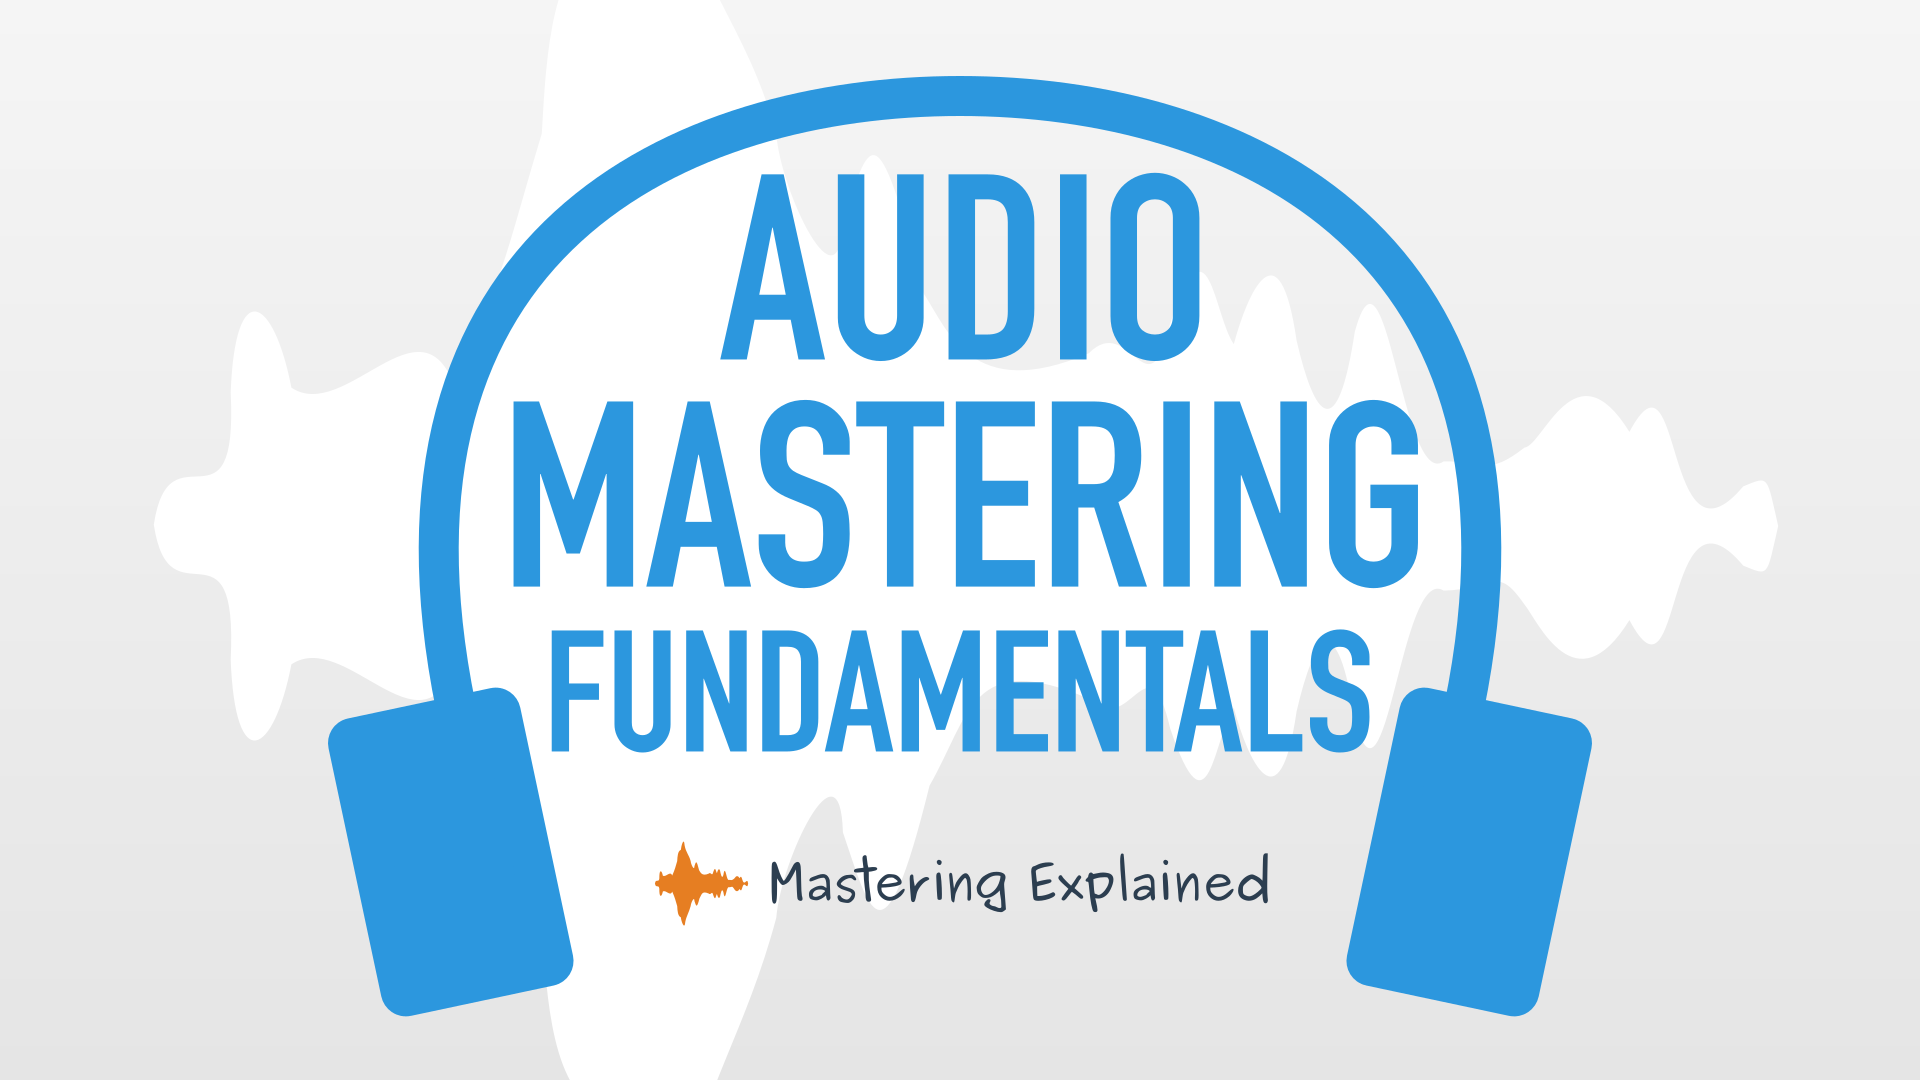 Audio mastering course logo